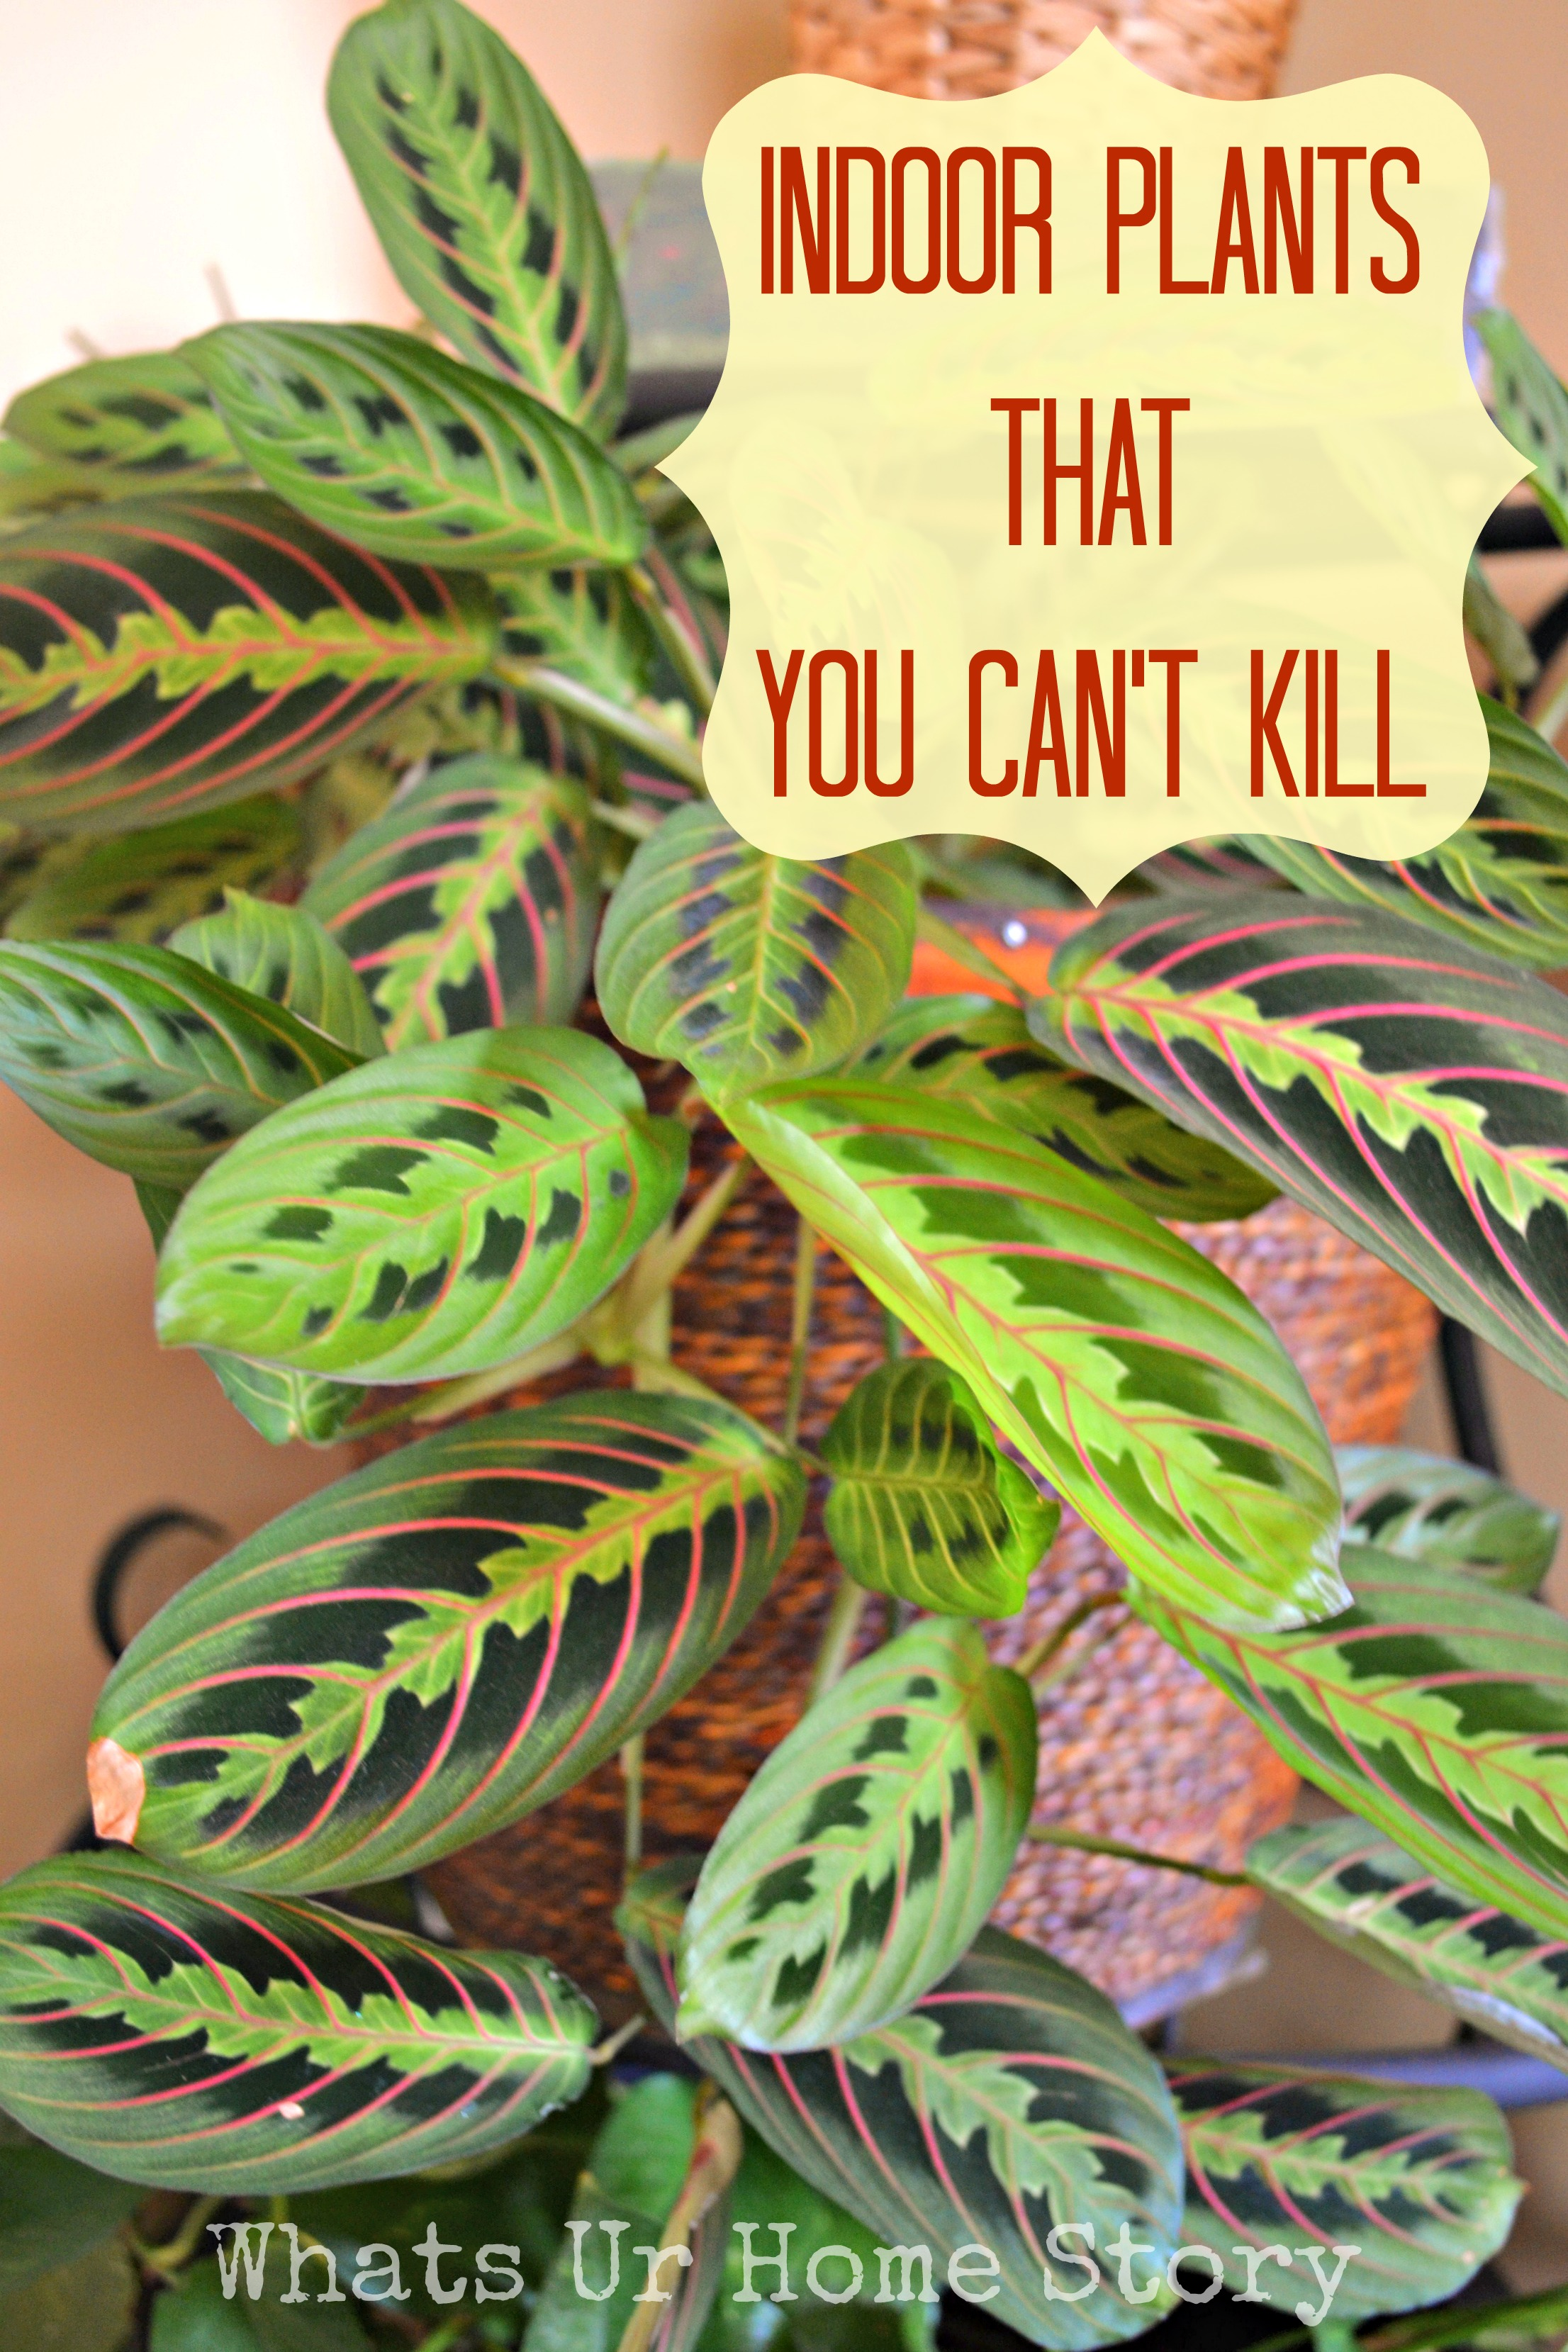 Indoor Plants that You Can't Kill